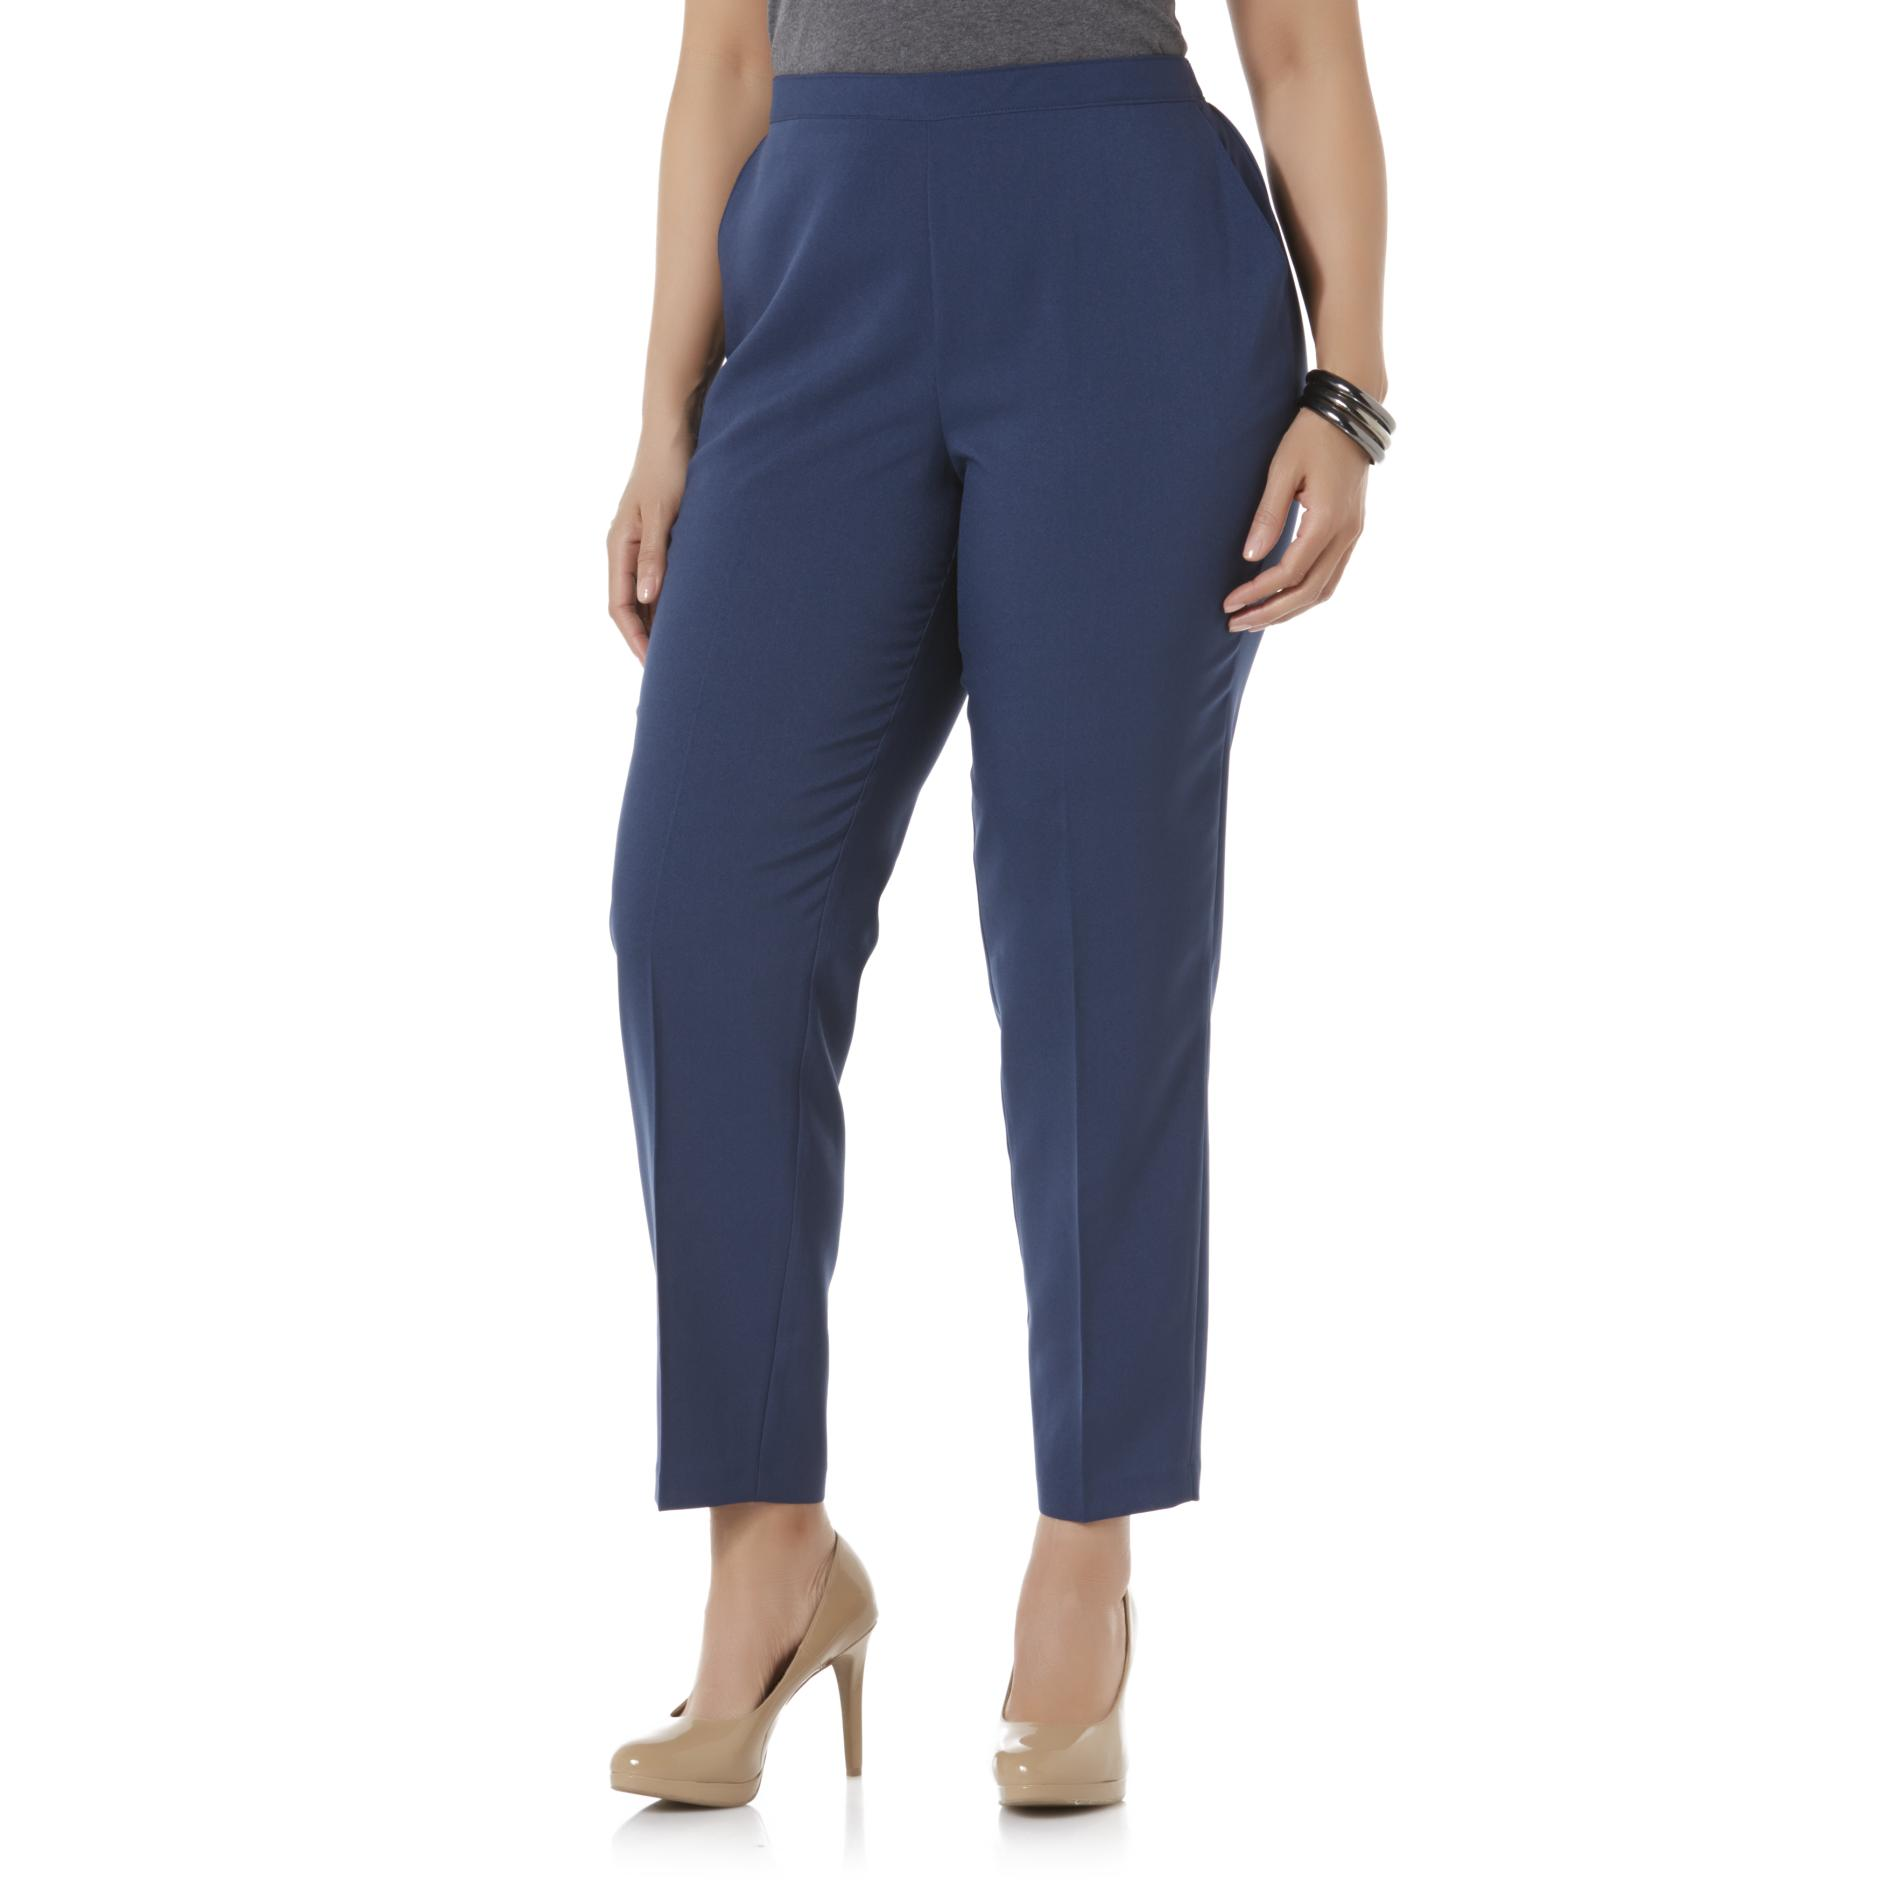 Laura Scott Women' Comfort-waist Pants - Short Length